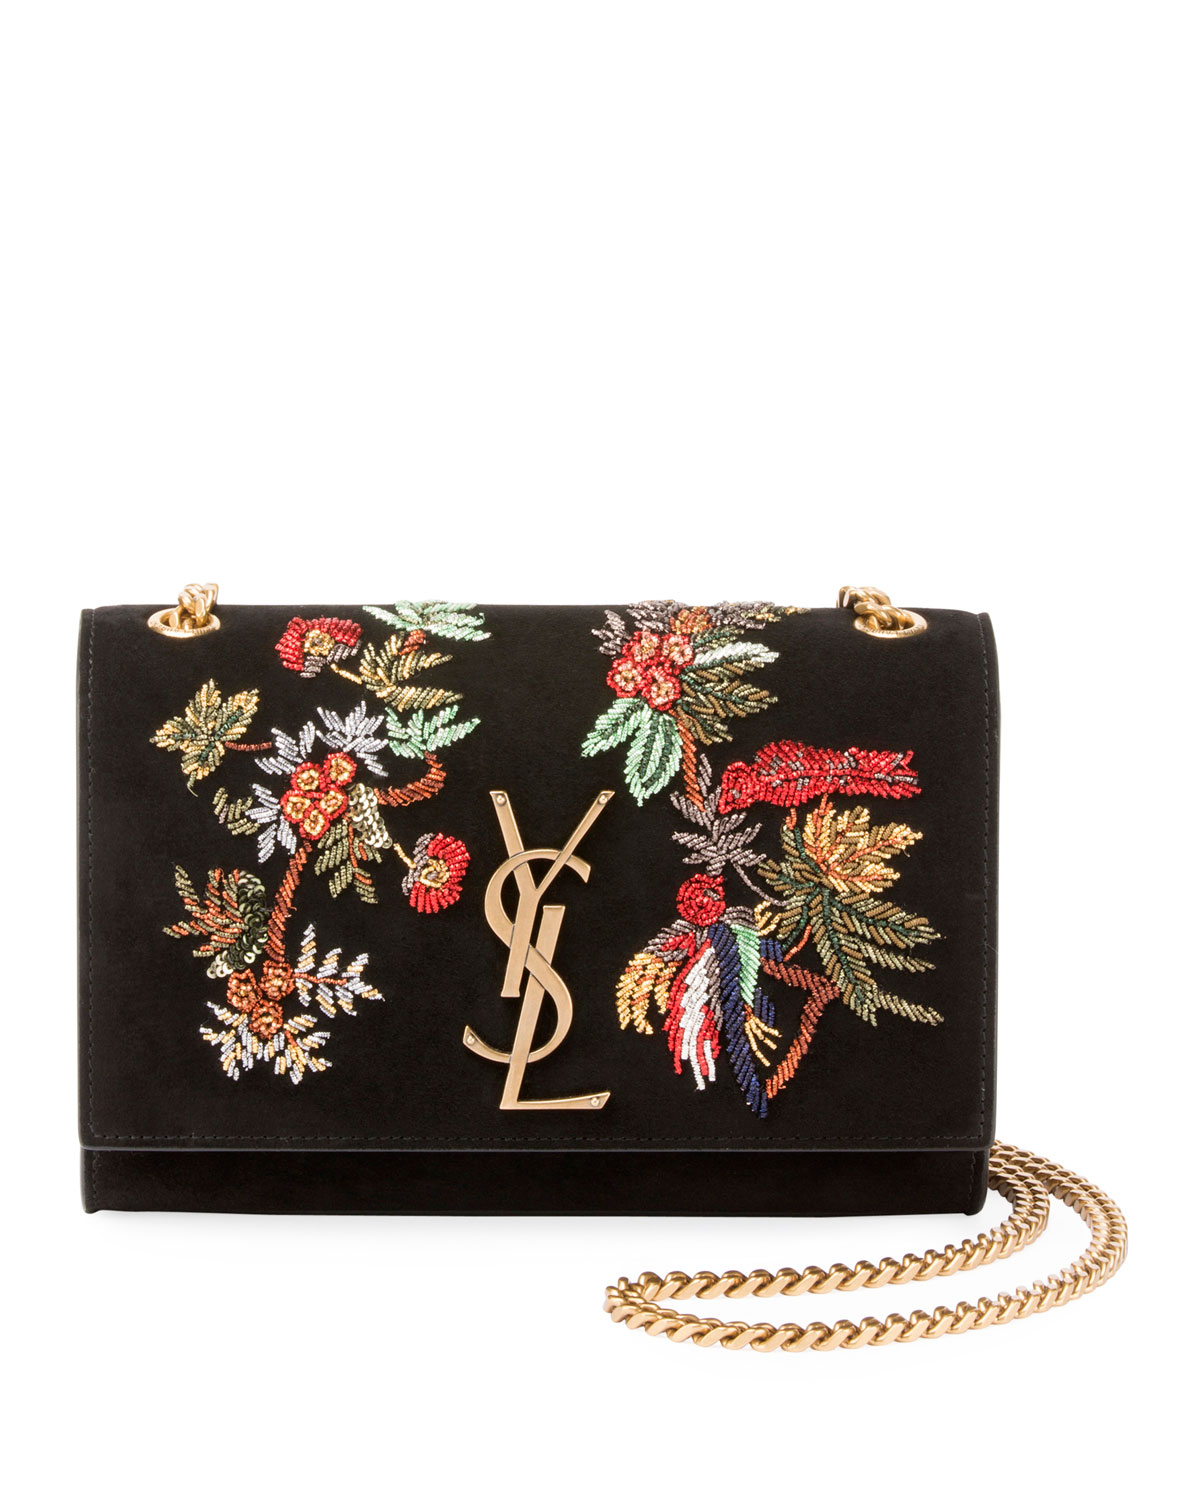 b5b33094007 Saint LaurentMonogram YSL Floral Bird Embroidered Suede Flap Wallet on  Chain Bag